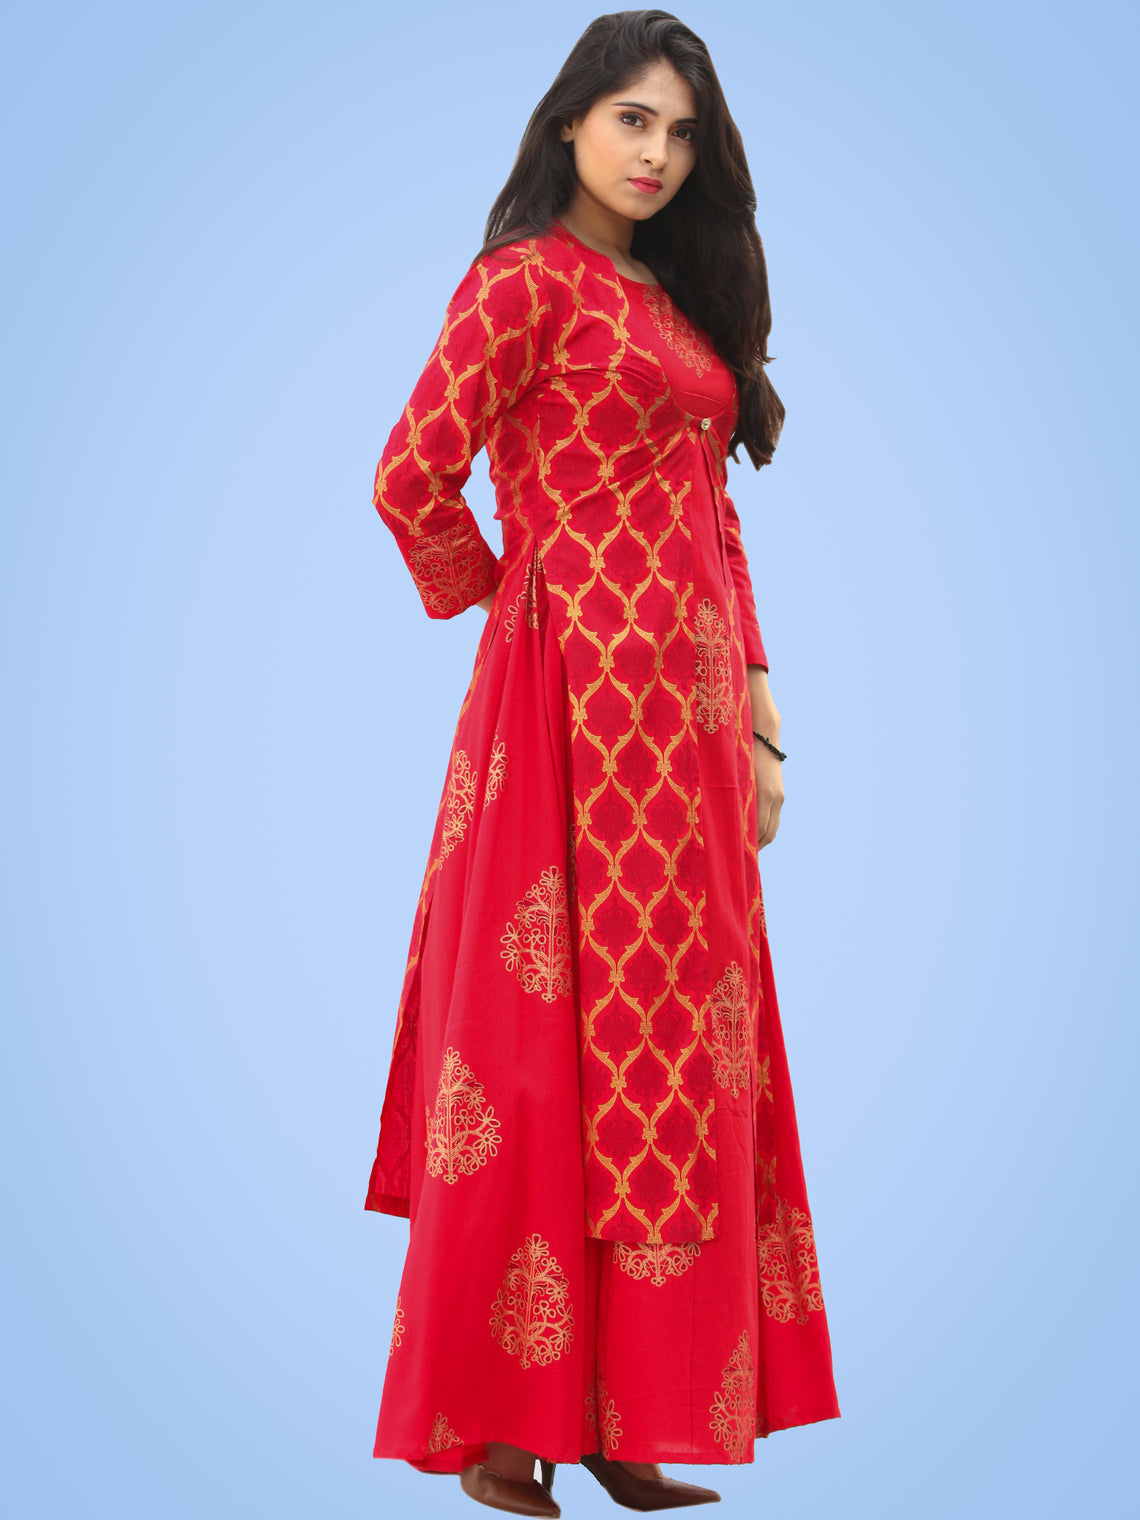 Jina - Red Gold Block Printed Long Cape Dress - D400FYYYY